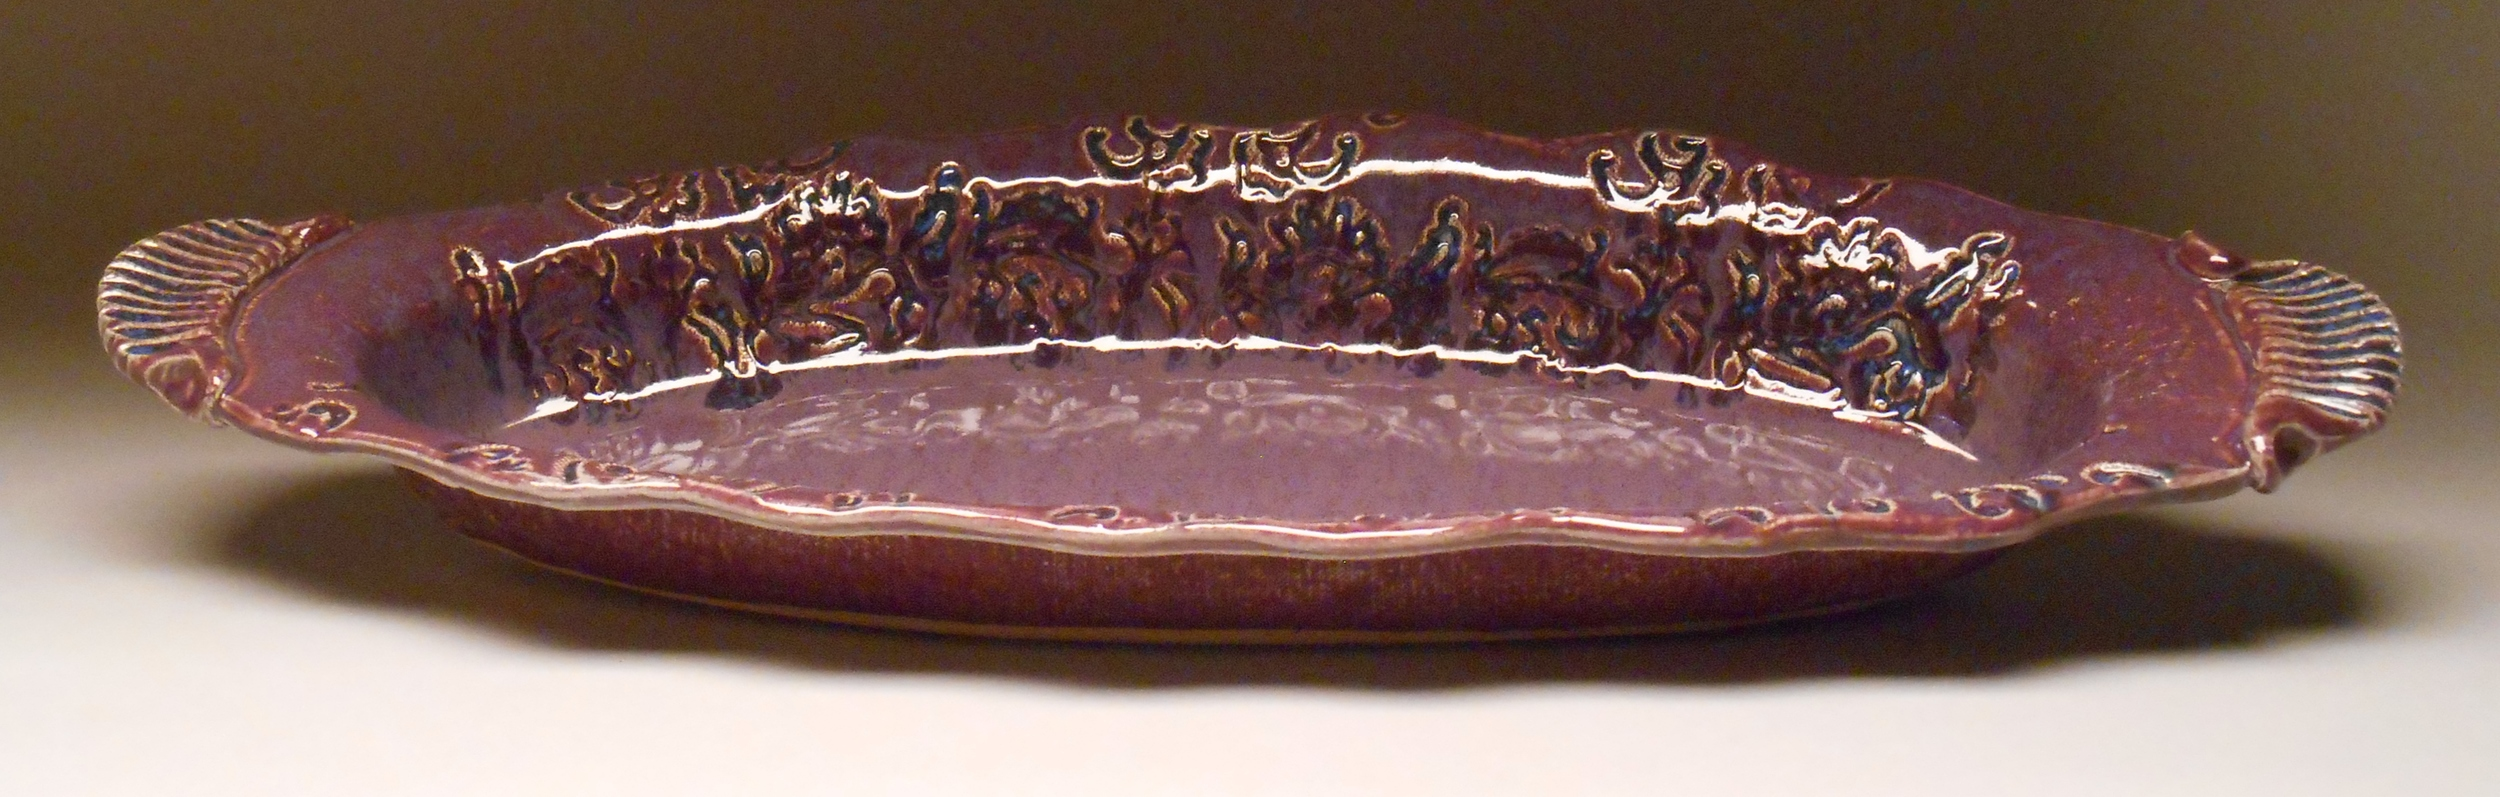 #297, Boat Tray with Floral Texture, 21x8x2